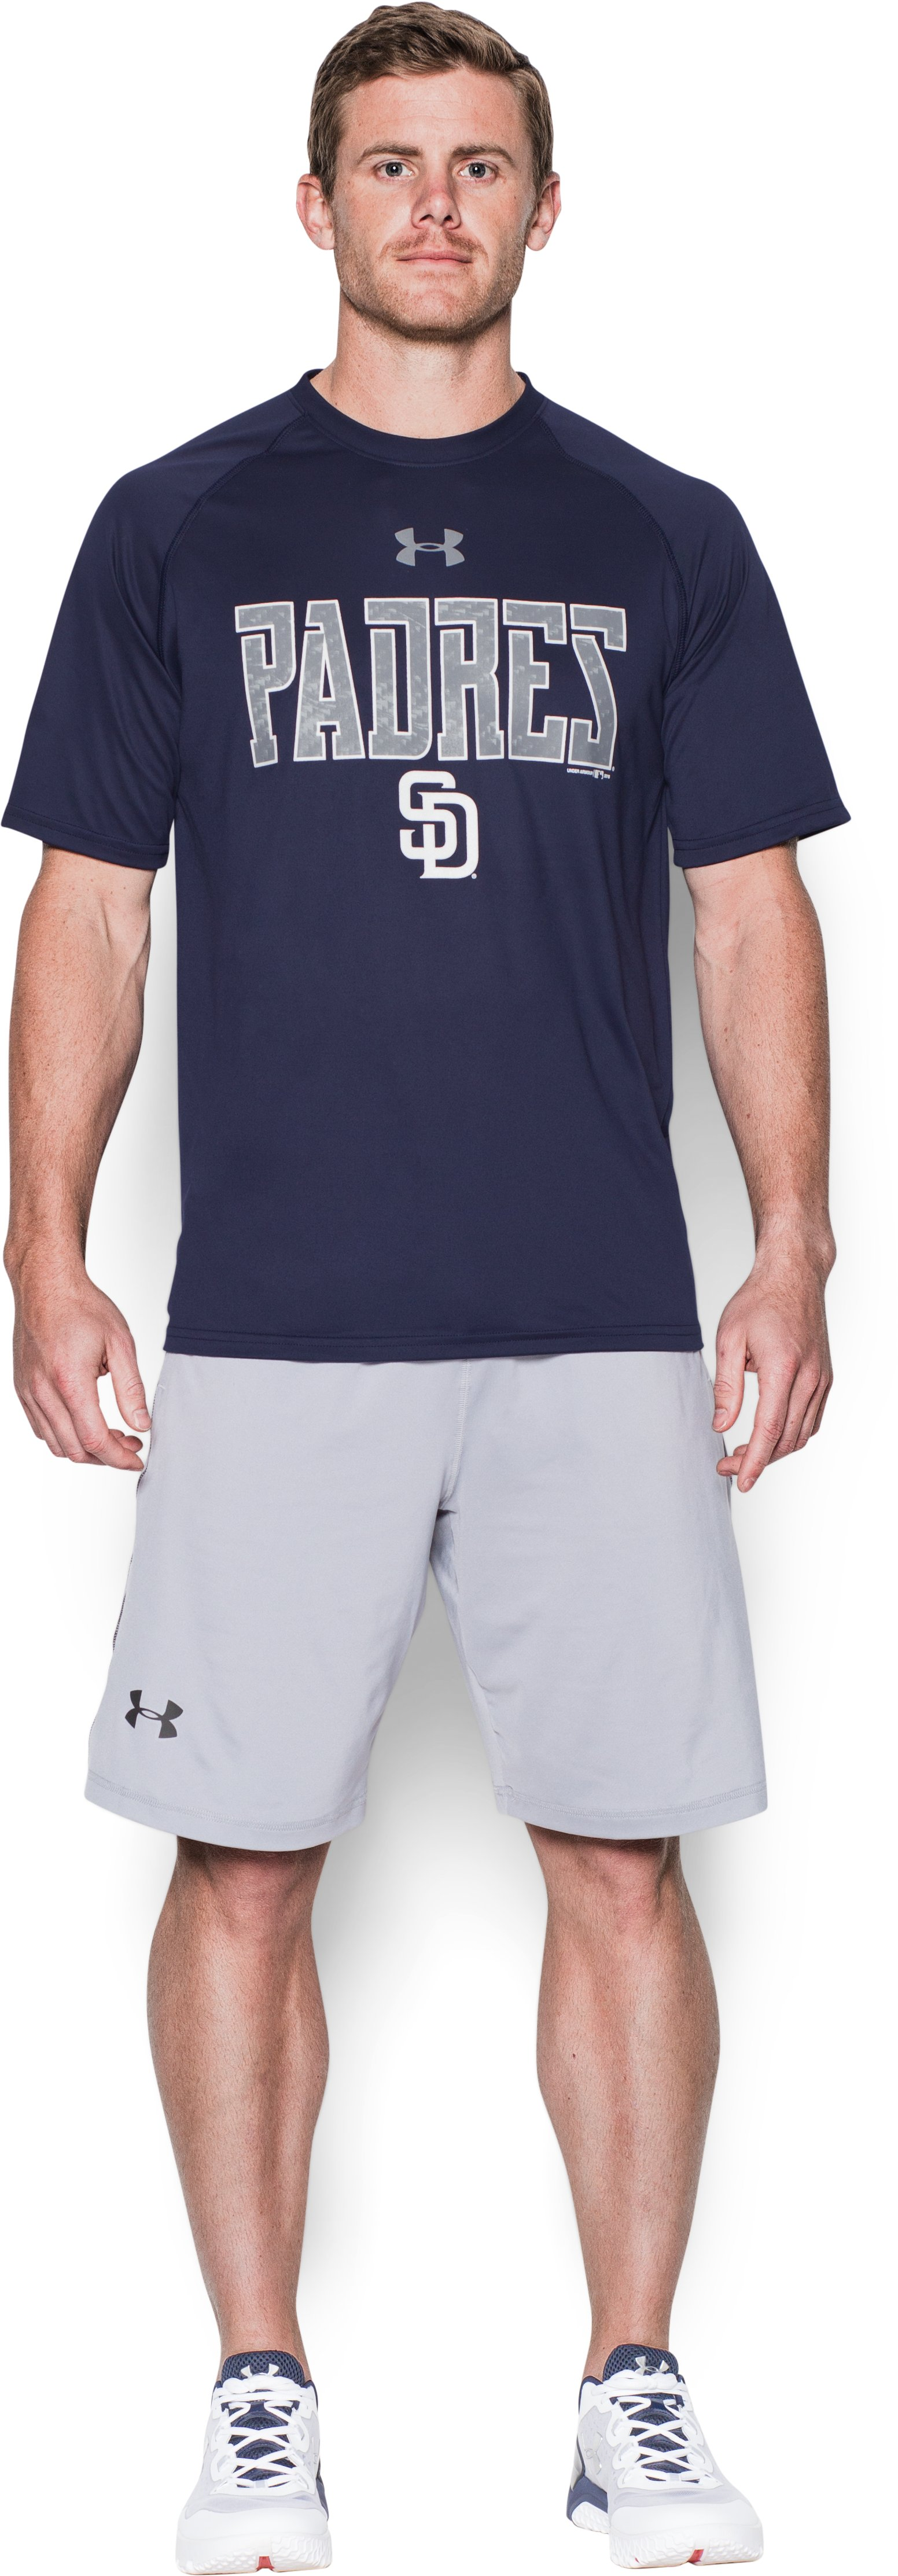 Men's San Diego Padres Team Tech™ T-Shirt, Midnight Navy